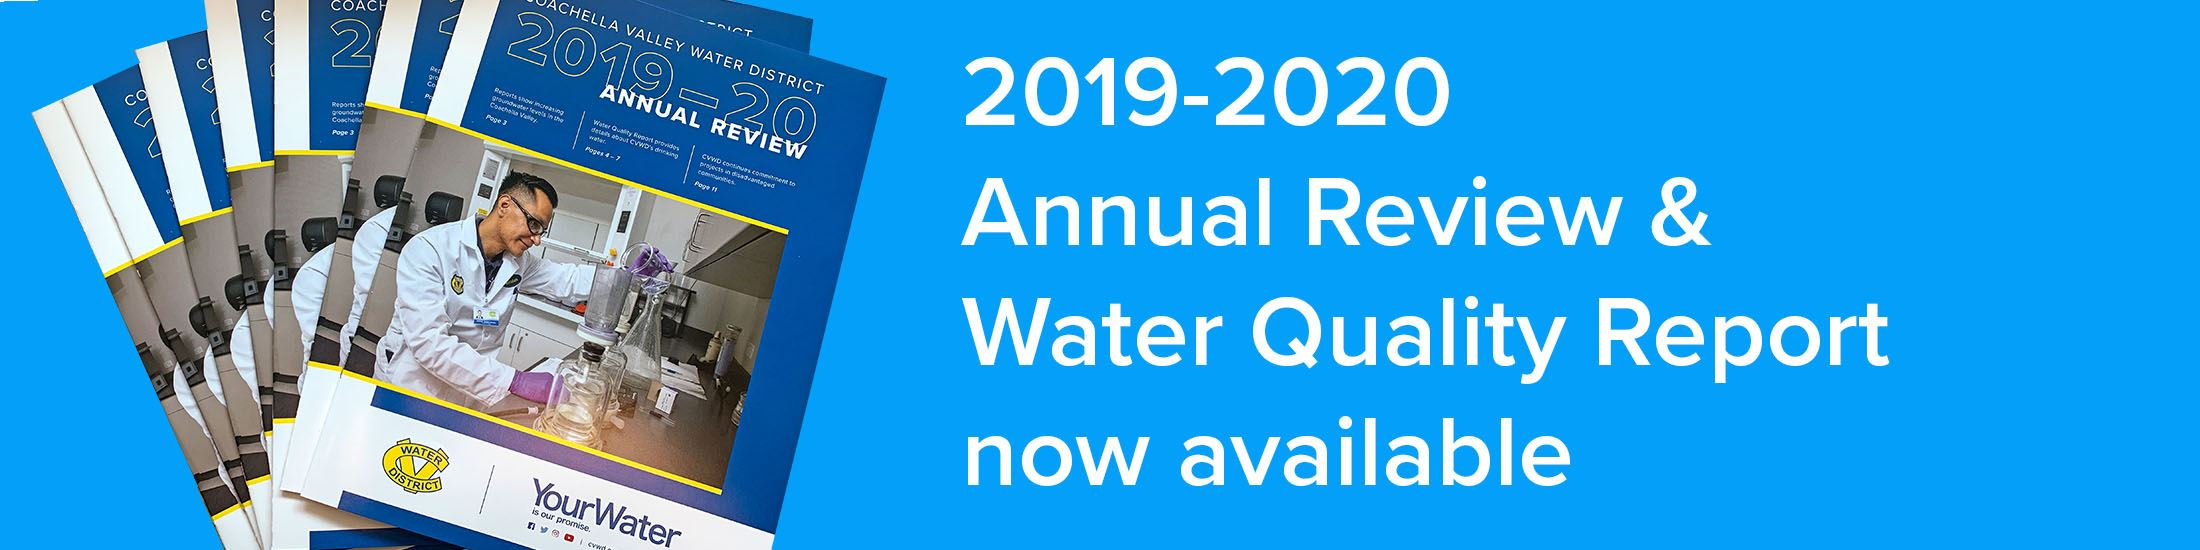 Annual Review & Water Quality report is now available online